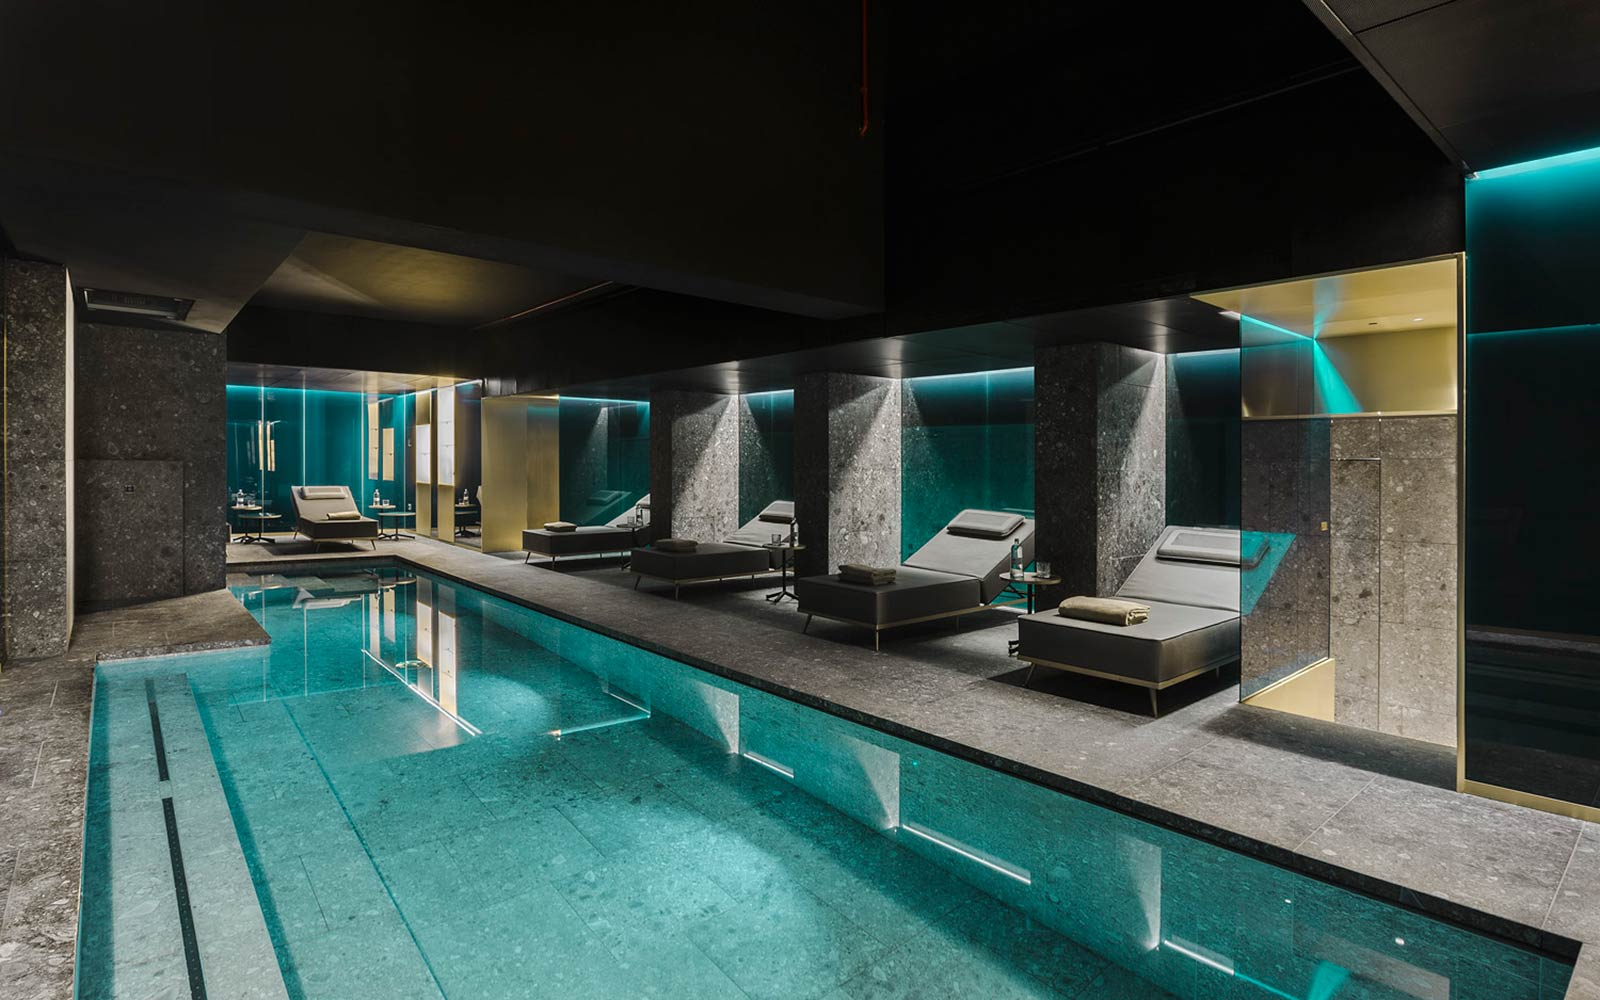 PISCINA<br>CERESIO7 GYM & SPA - MILANO